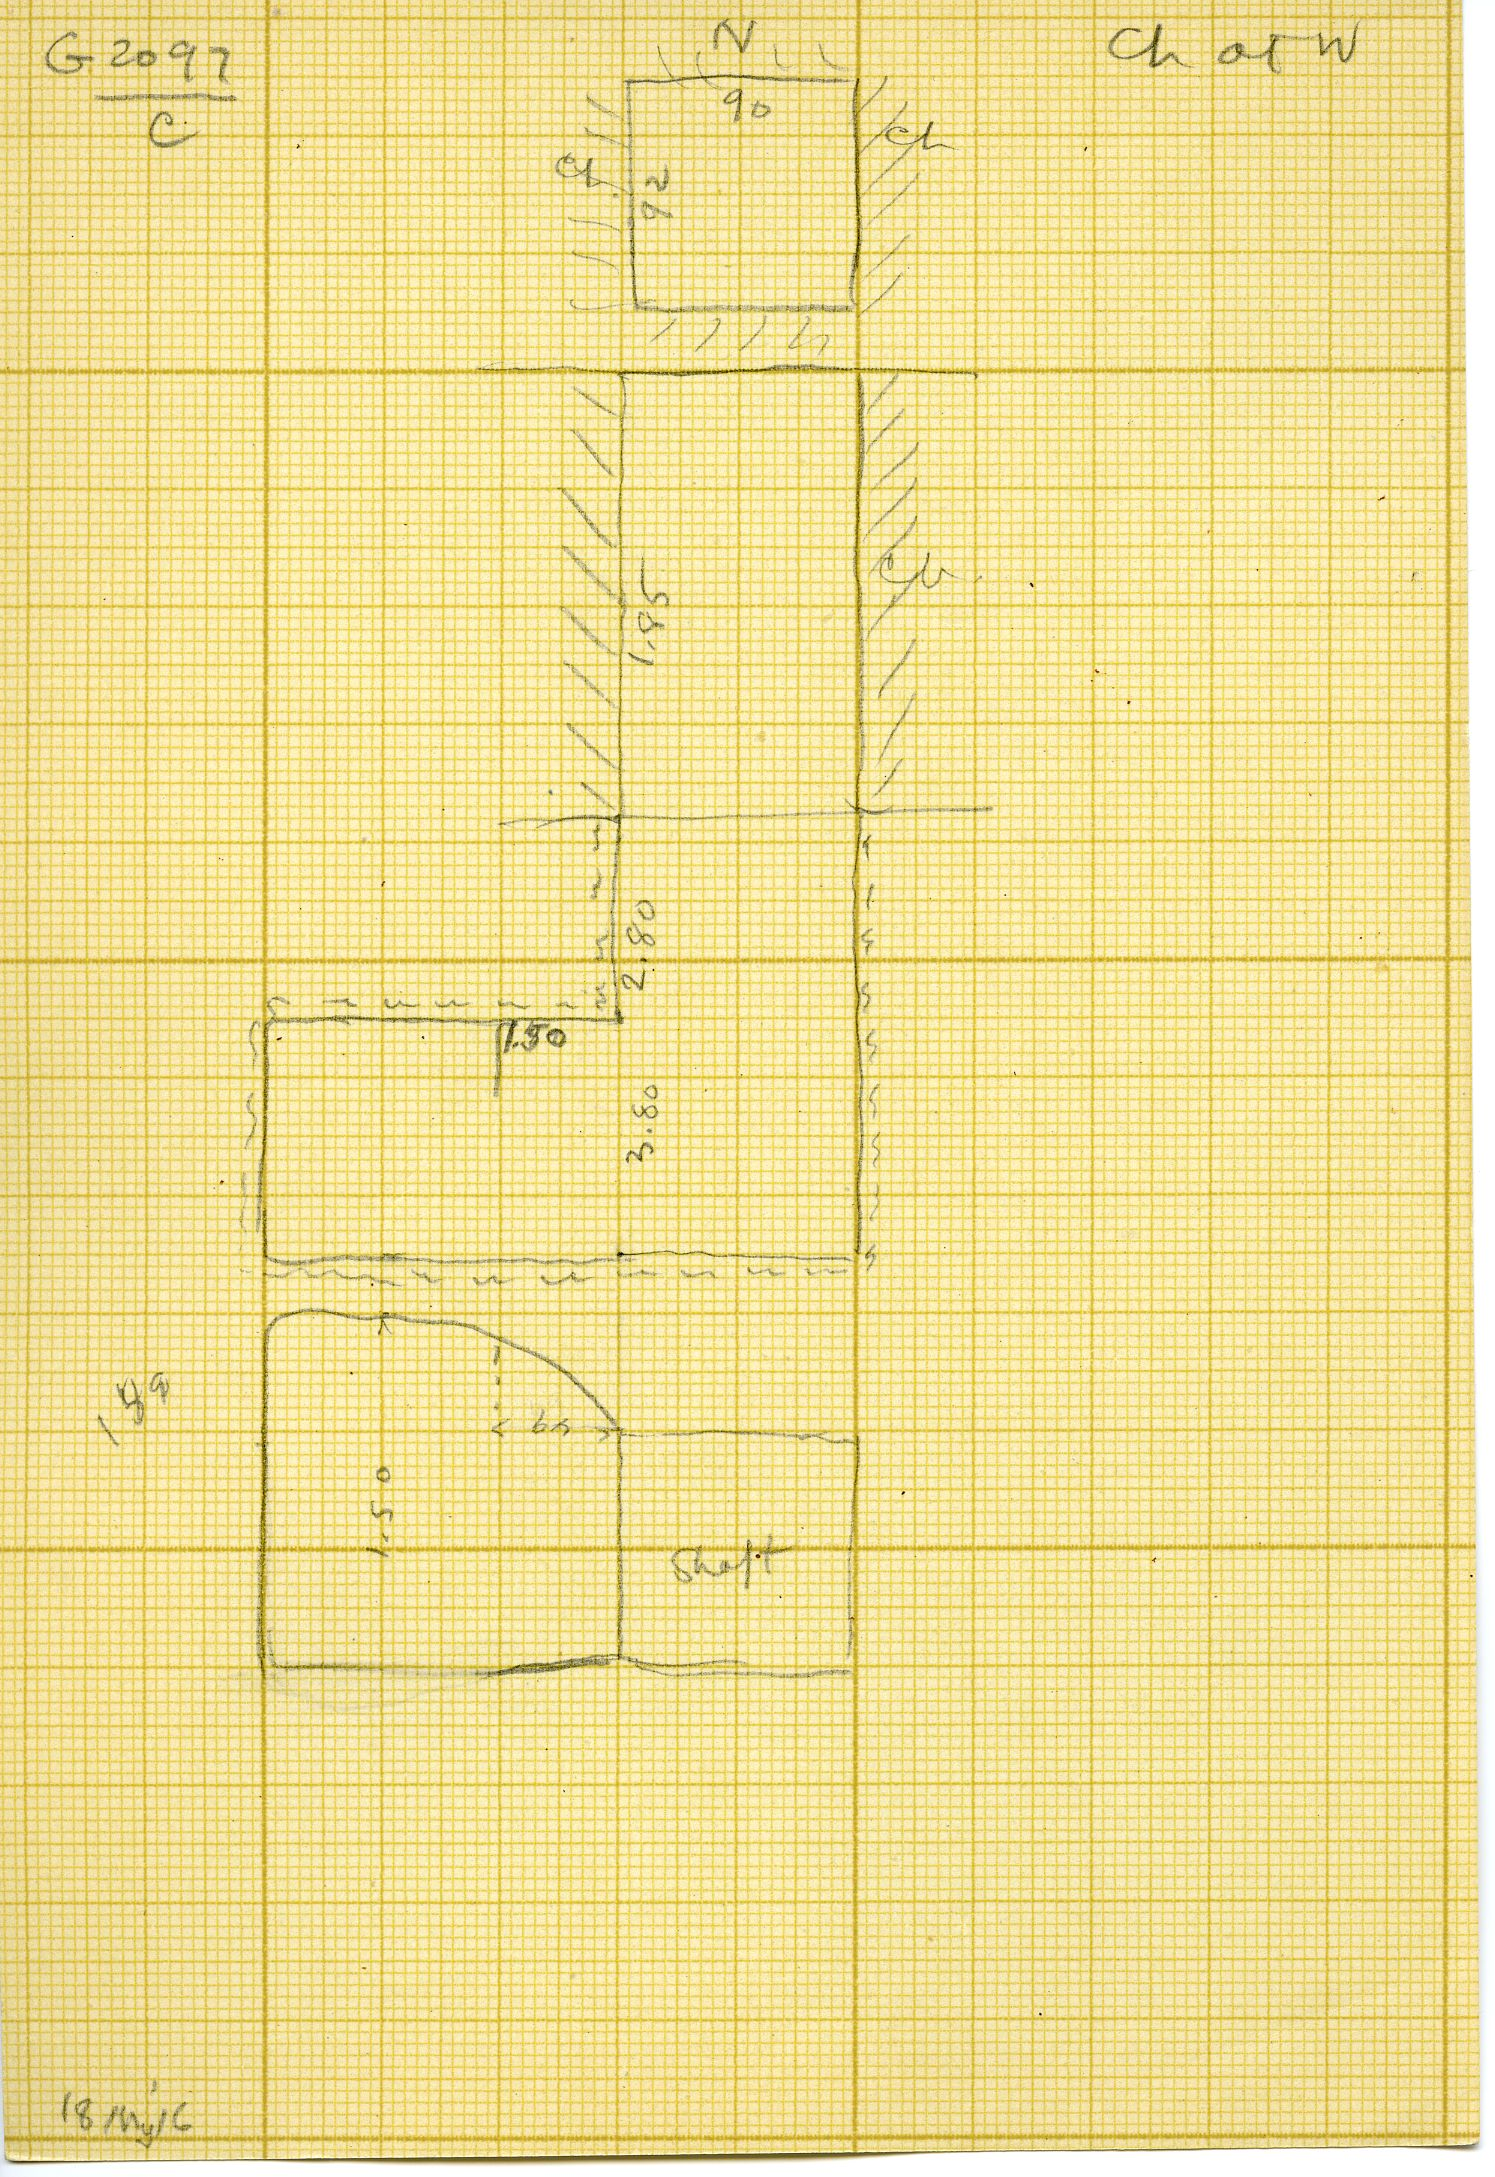 Maps and plans: G 3097, Shaft C